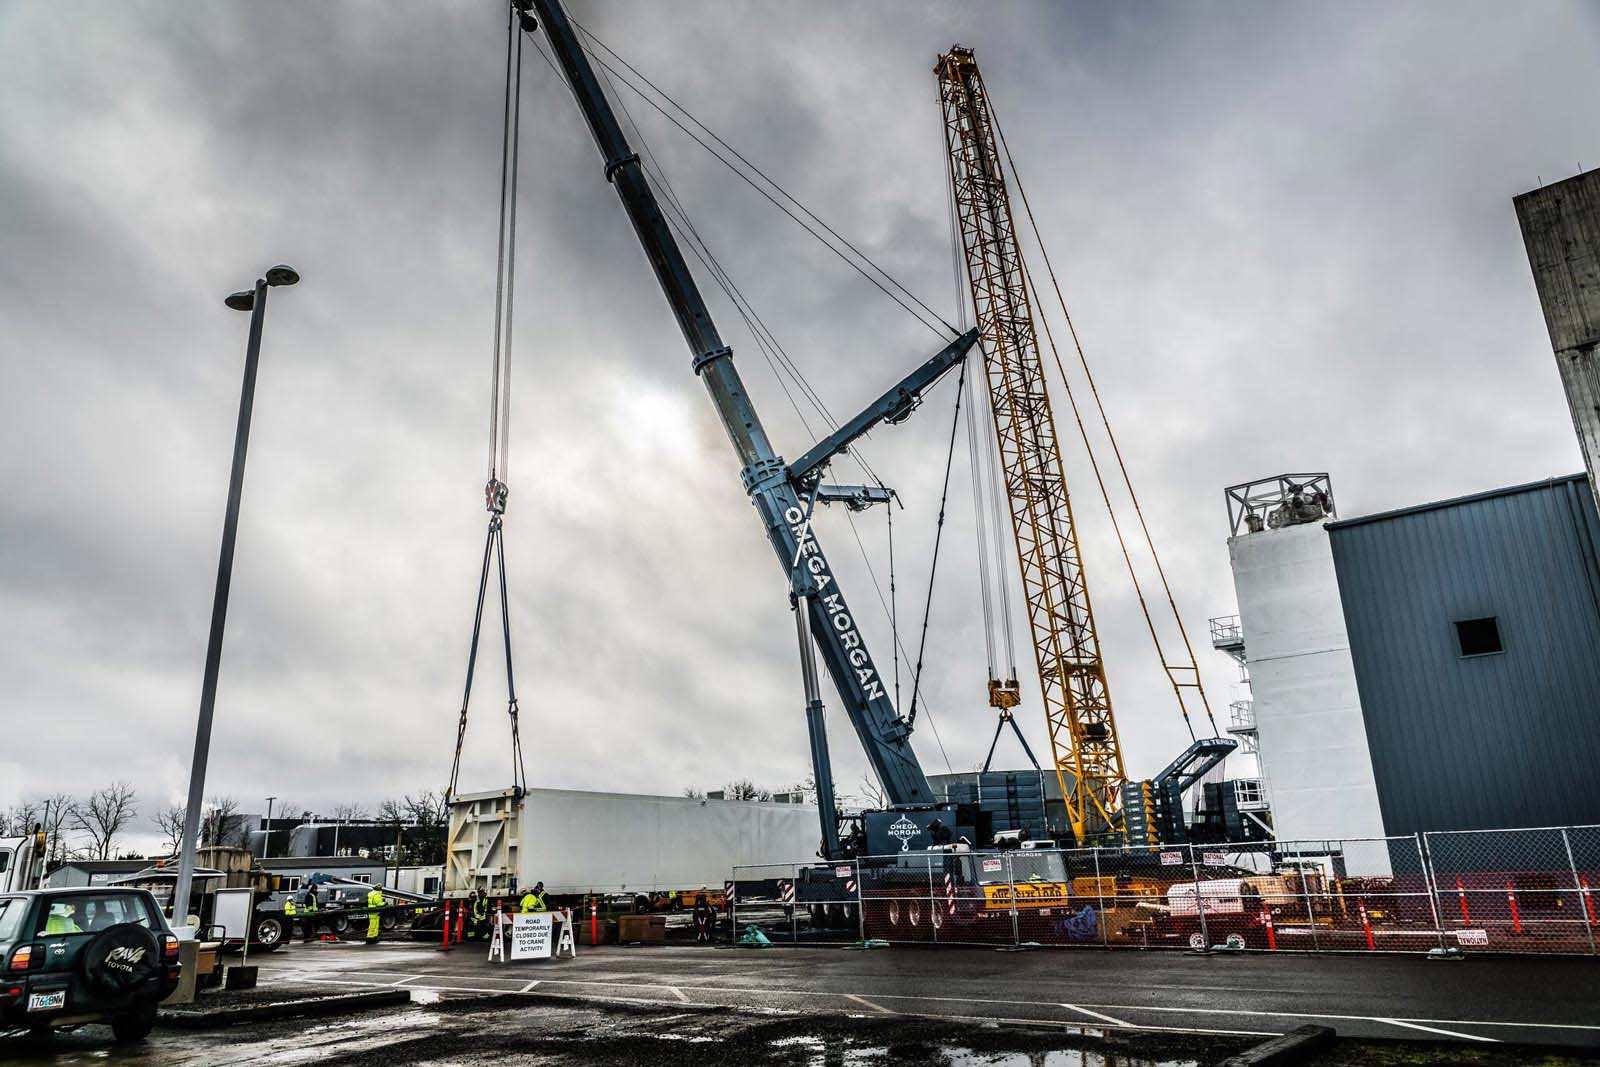 Omega Morgan and sarens cranes with ropes attached to the linde cold box to prepare for lifting